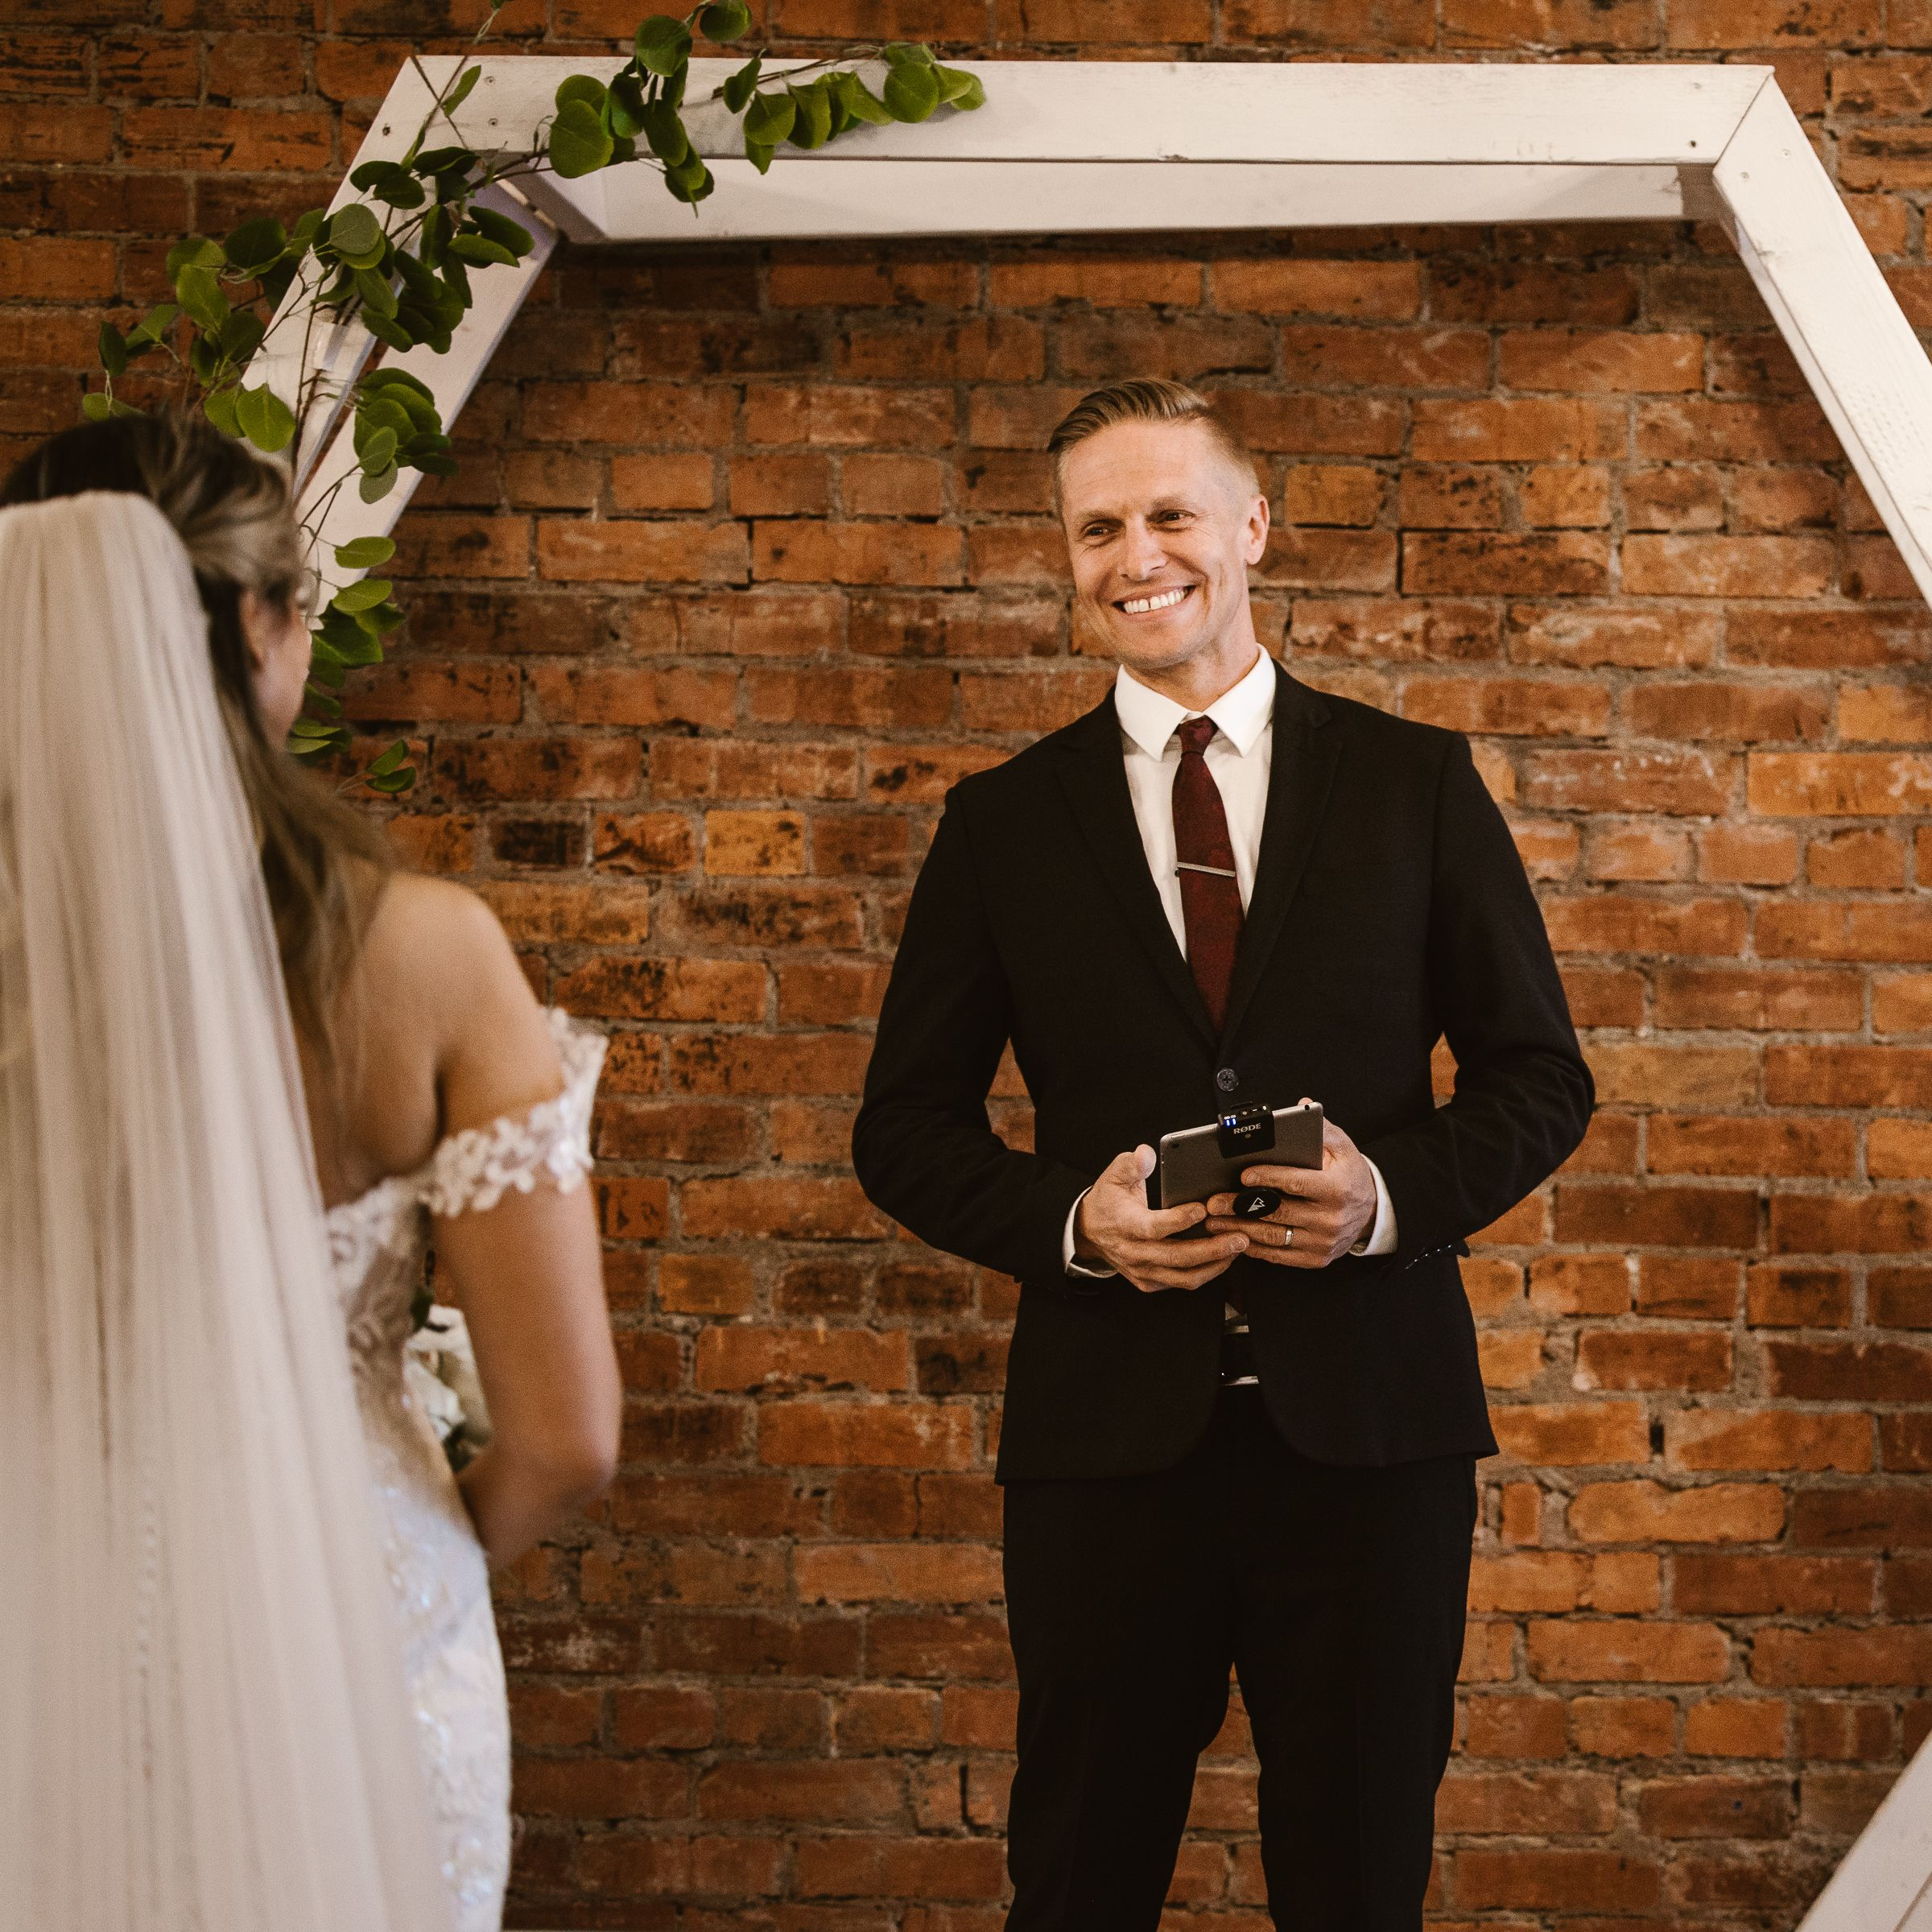 Urban officiant wedding ceremony